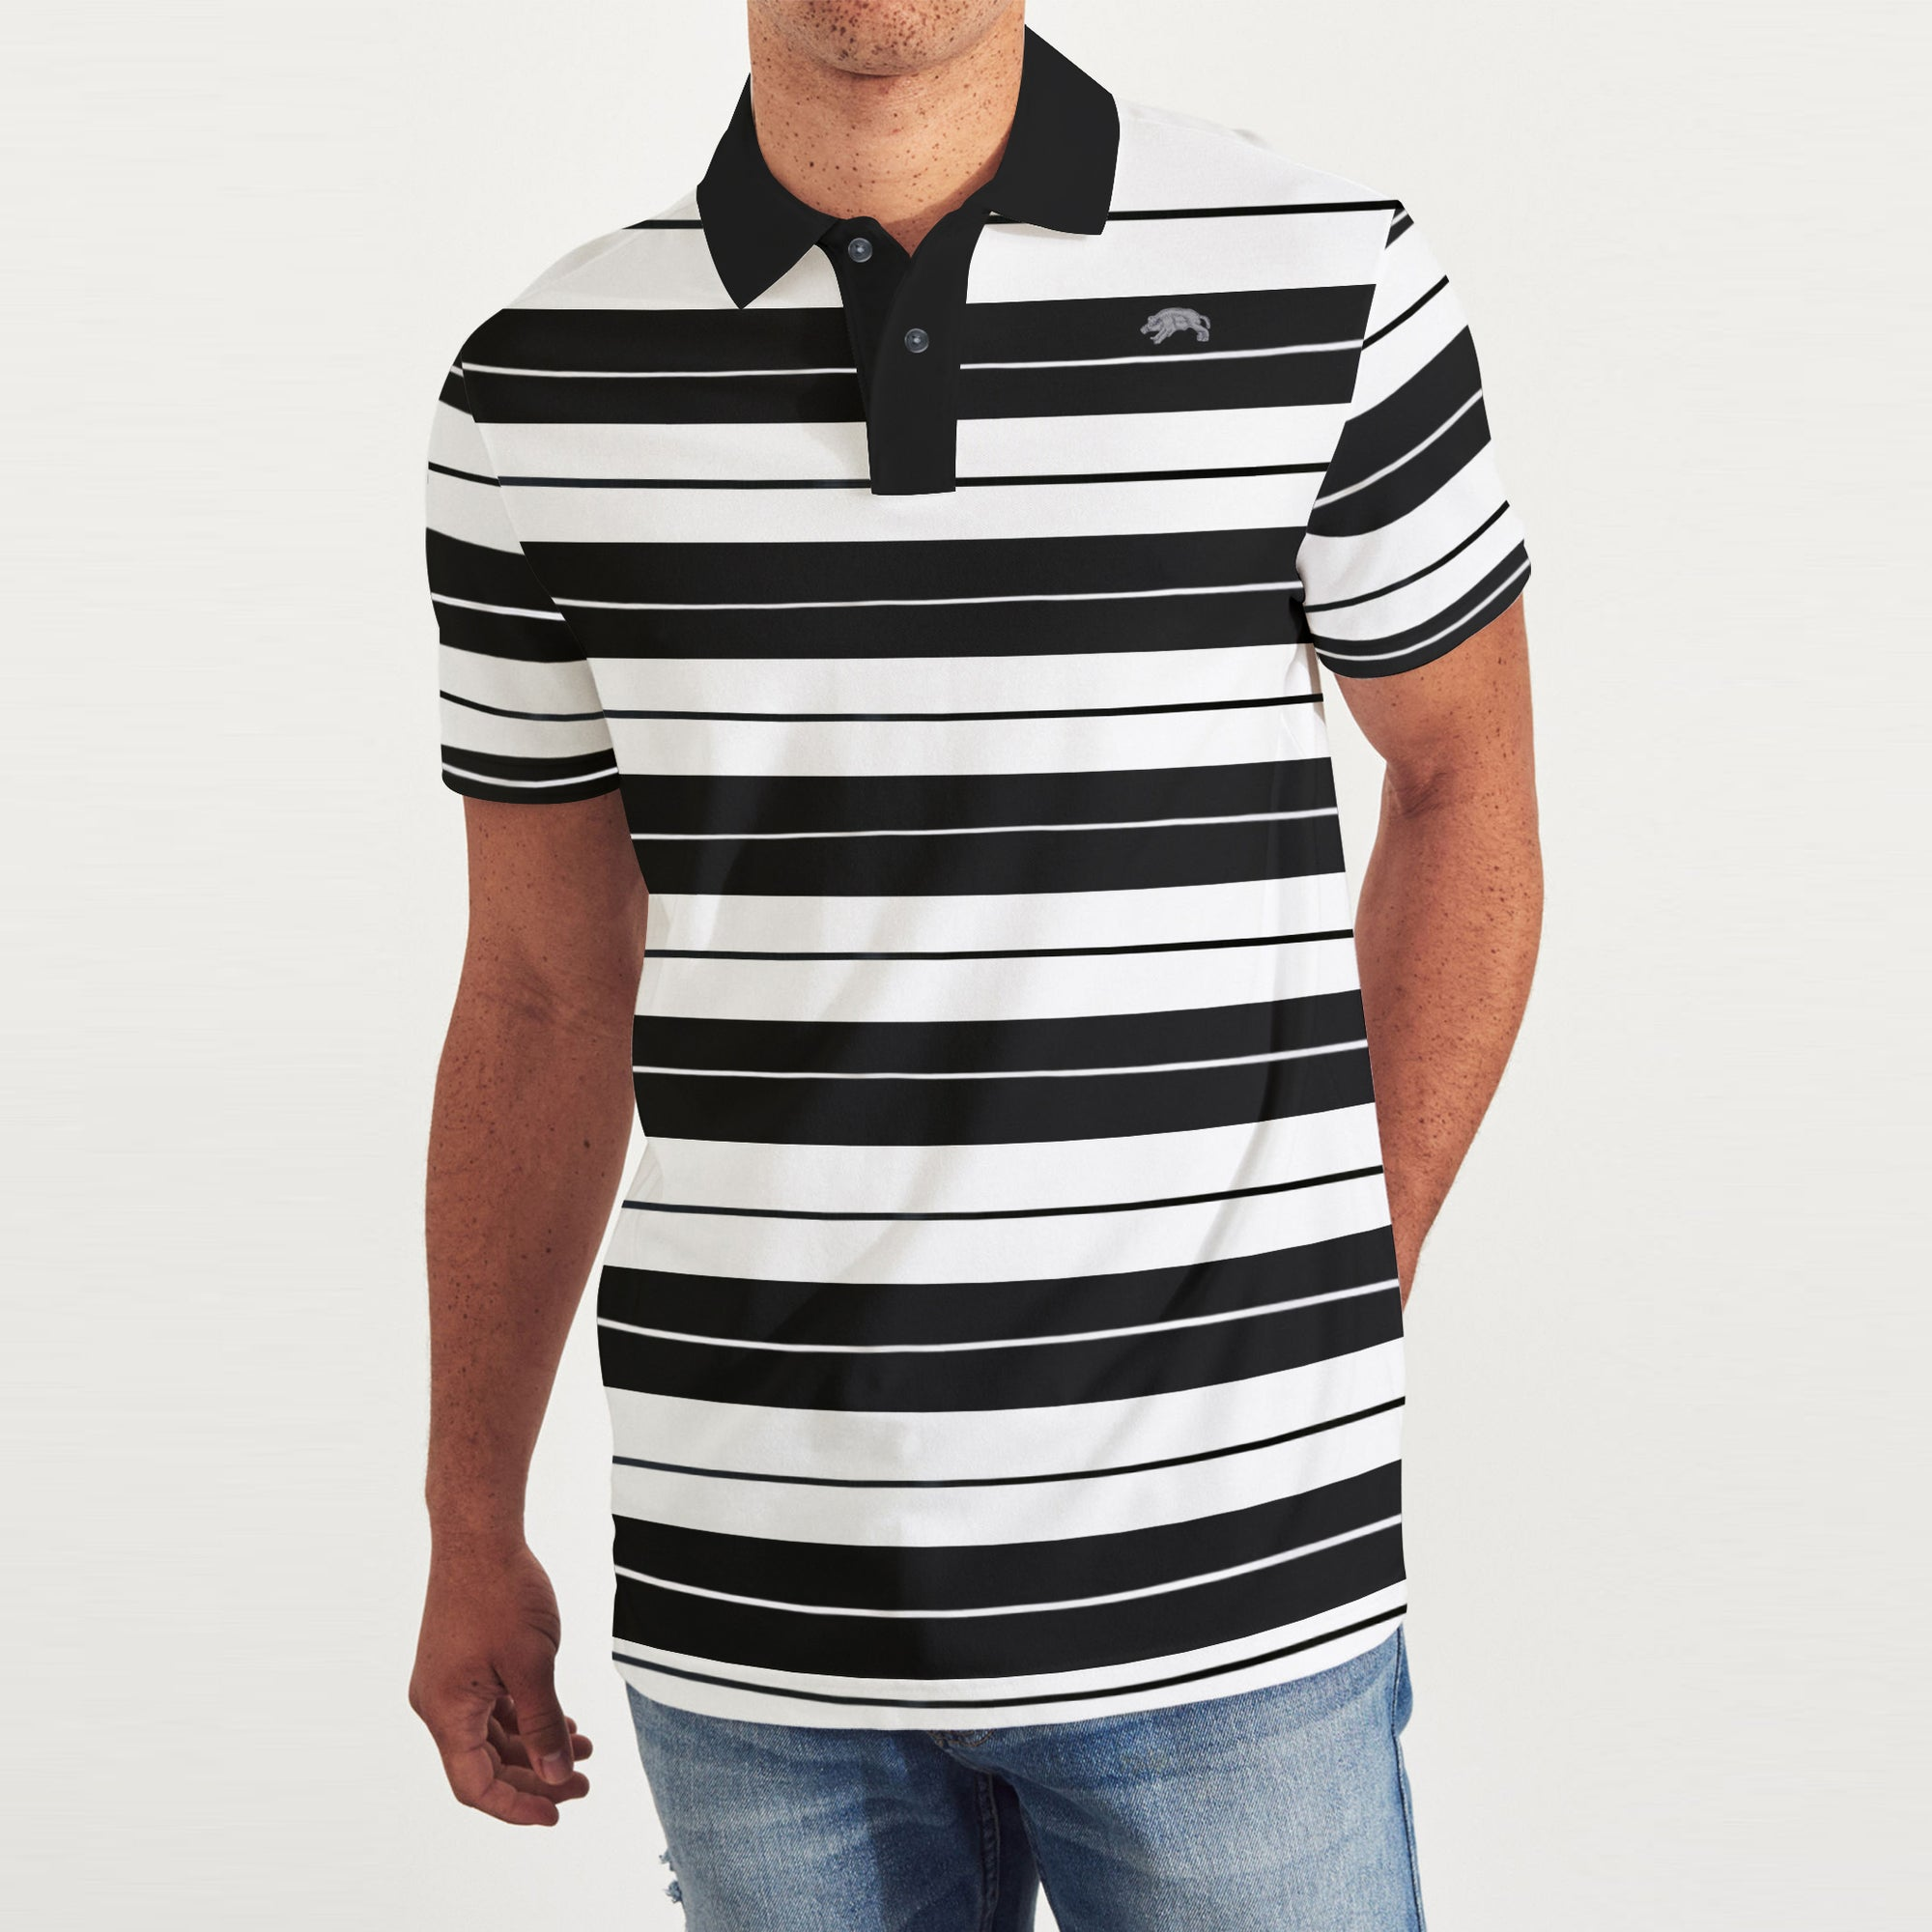 American Rag Short Sleeve Single Jersey Polo Shirt For Men White Black Stripe Be8607